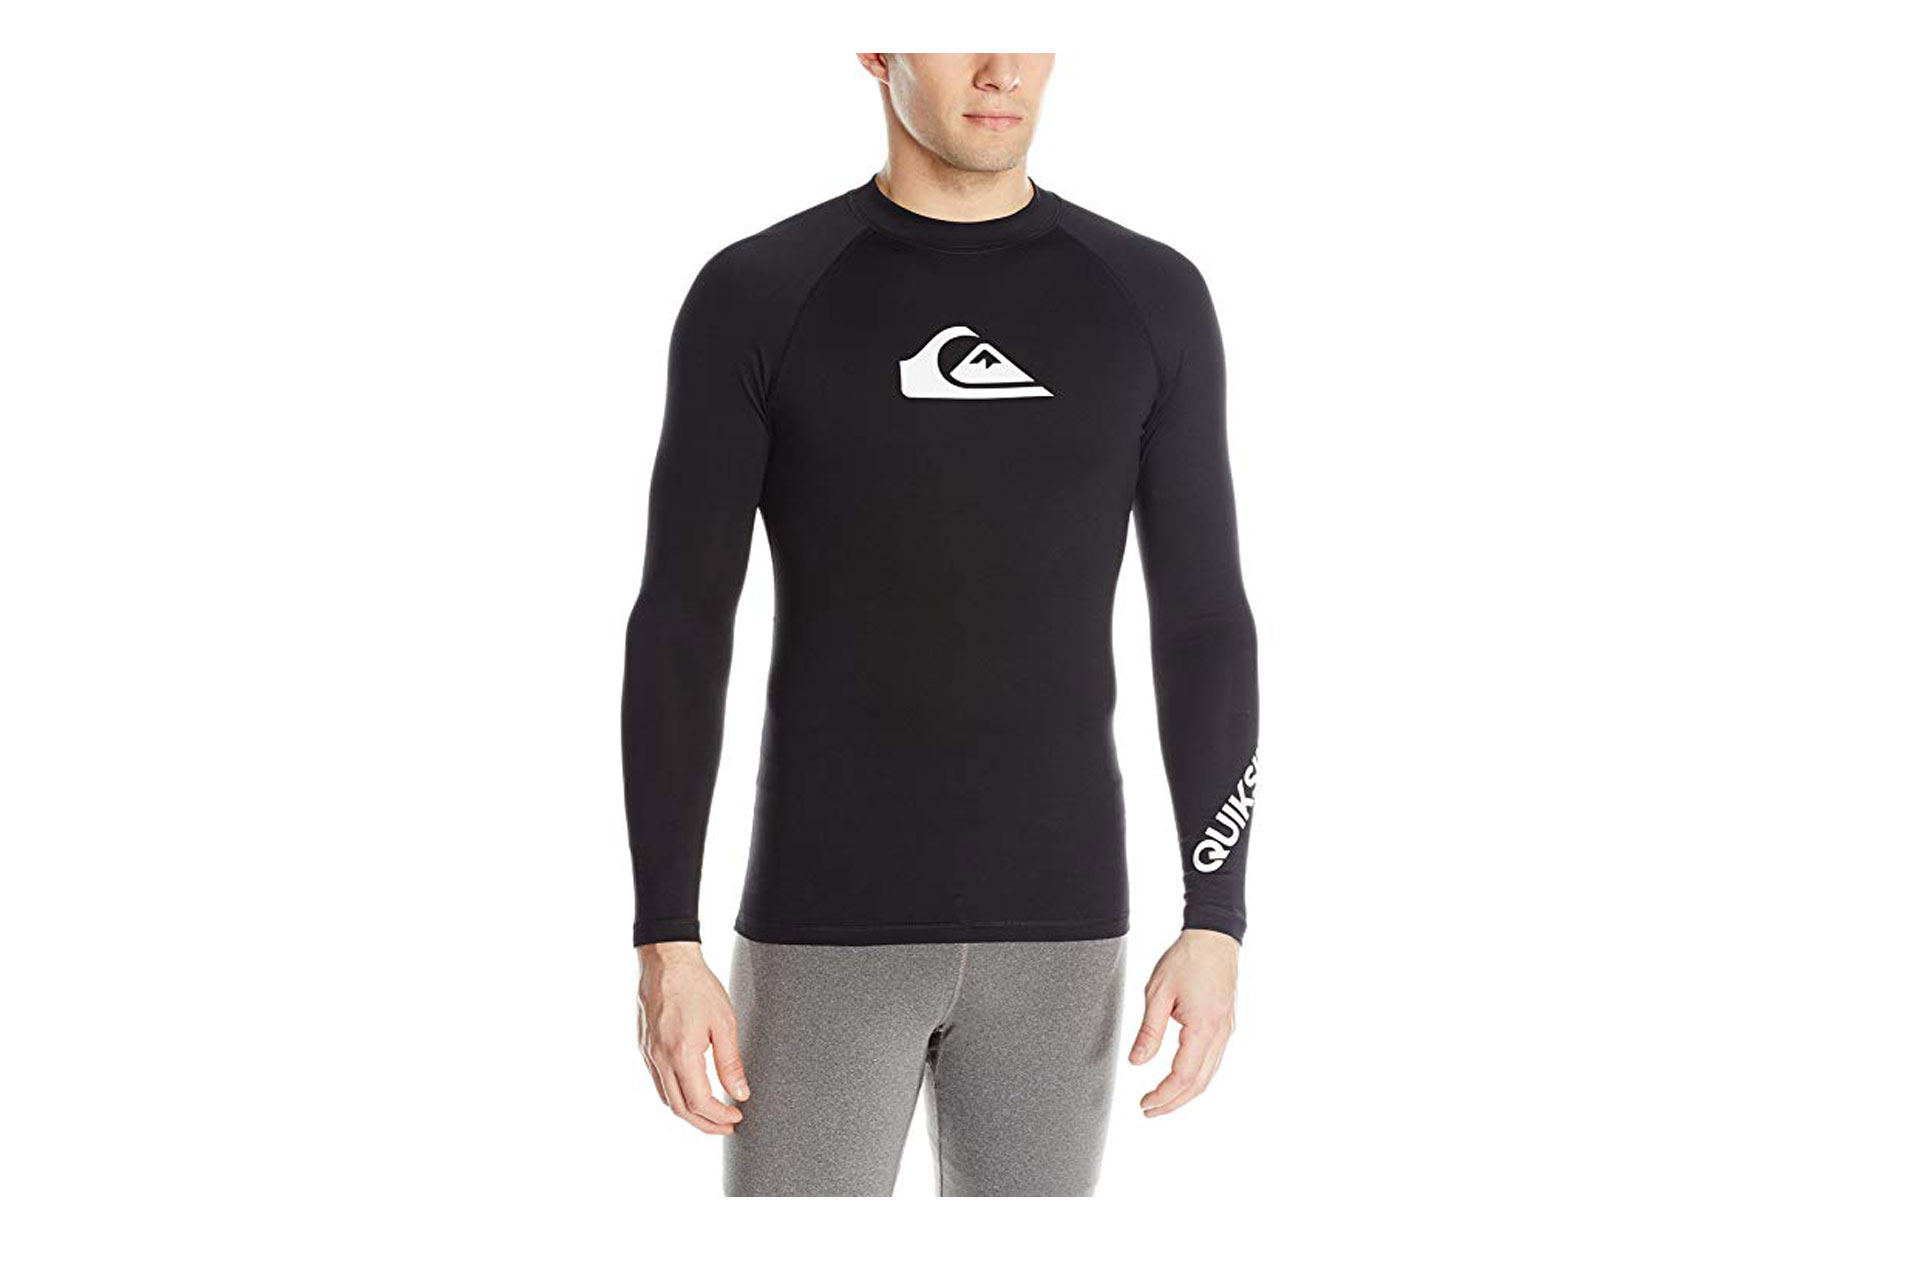 Mens Rash Guard; Courtesy of Amazon